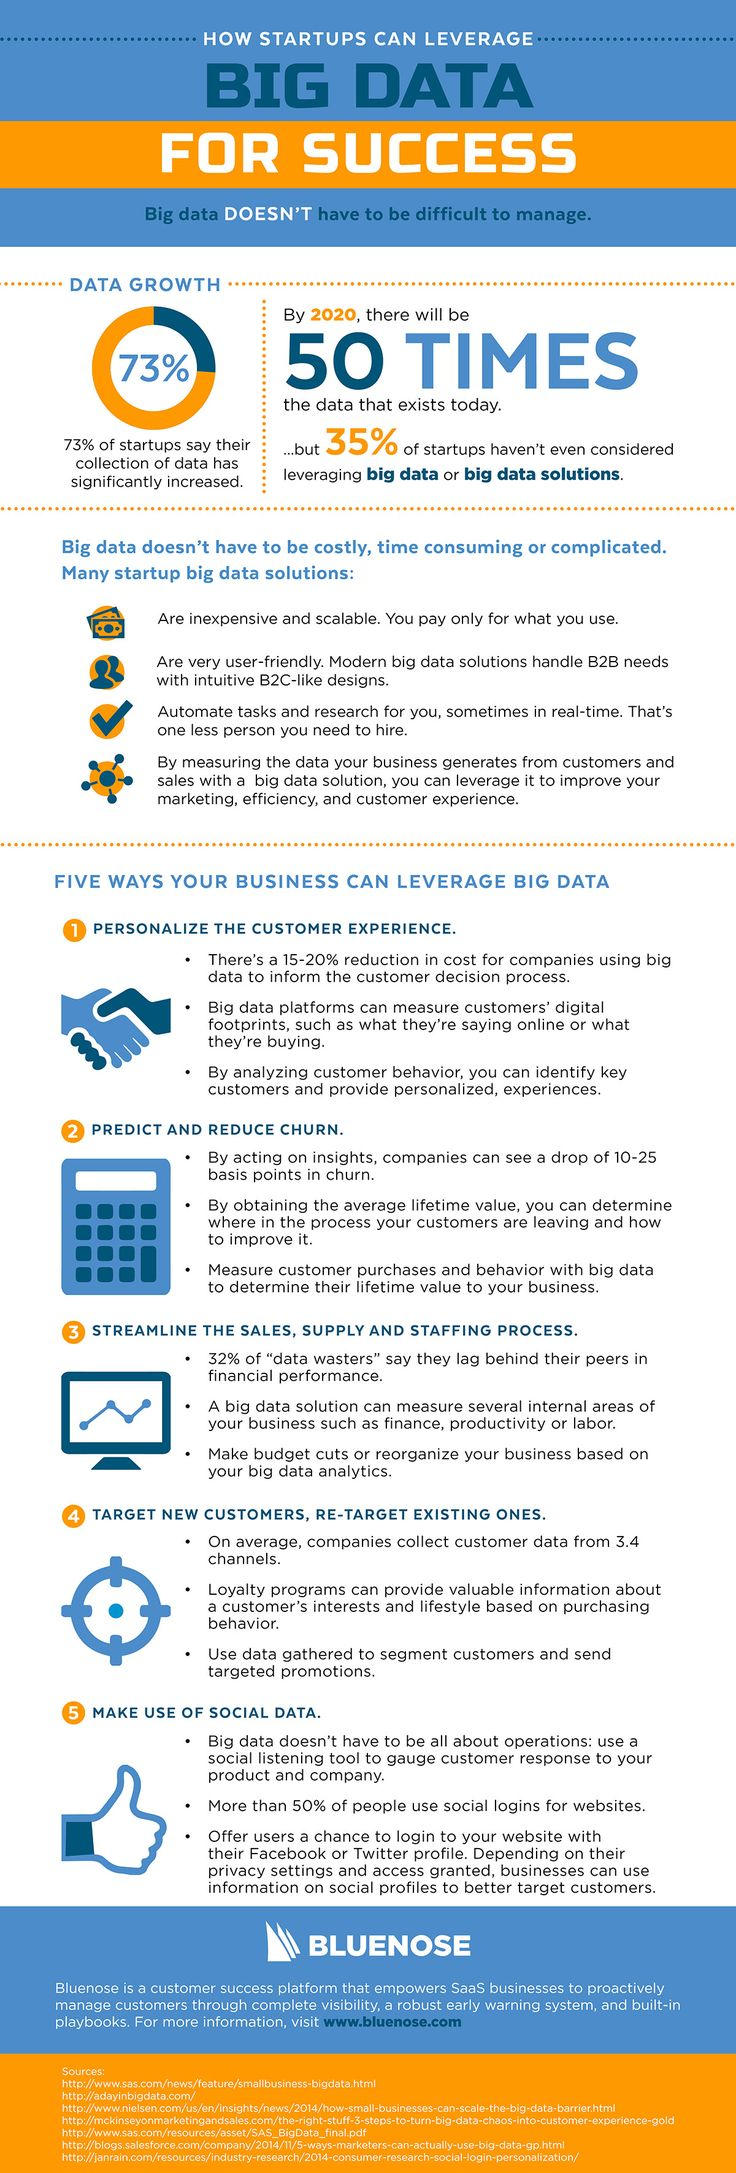 How Startups Can Leverage Big Data For Success #infographic #Business #Startup #infografía